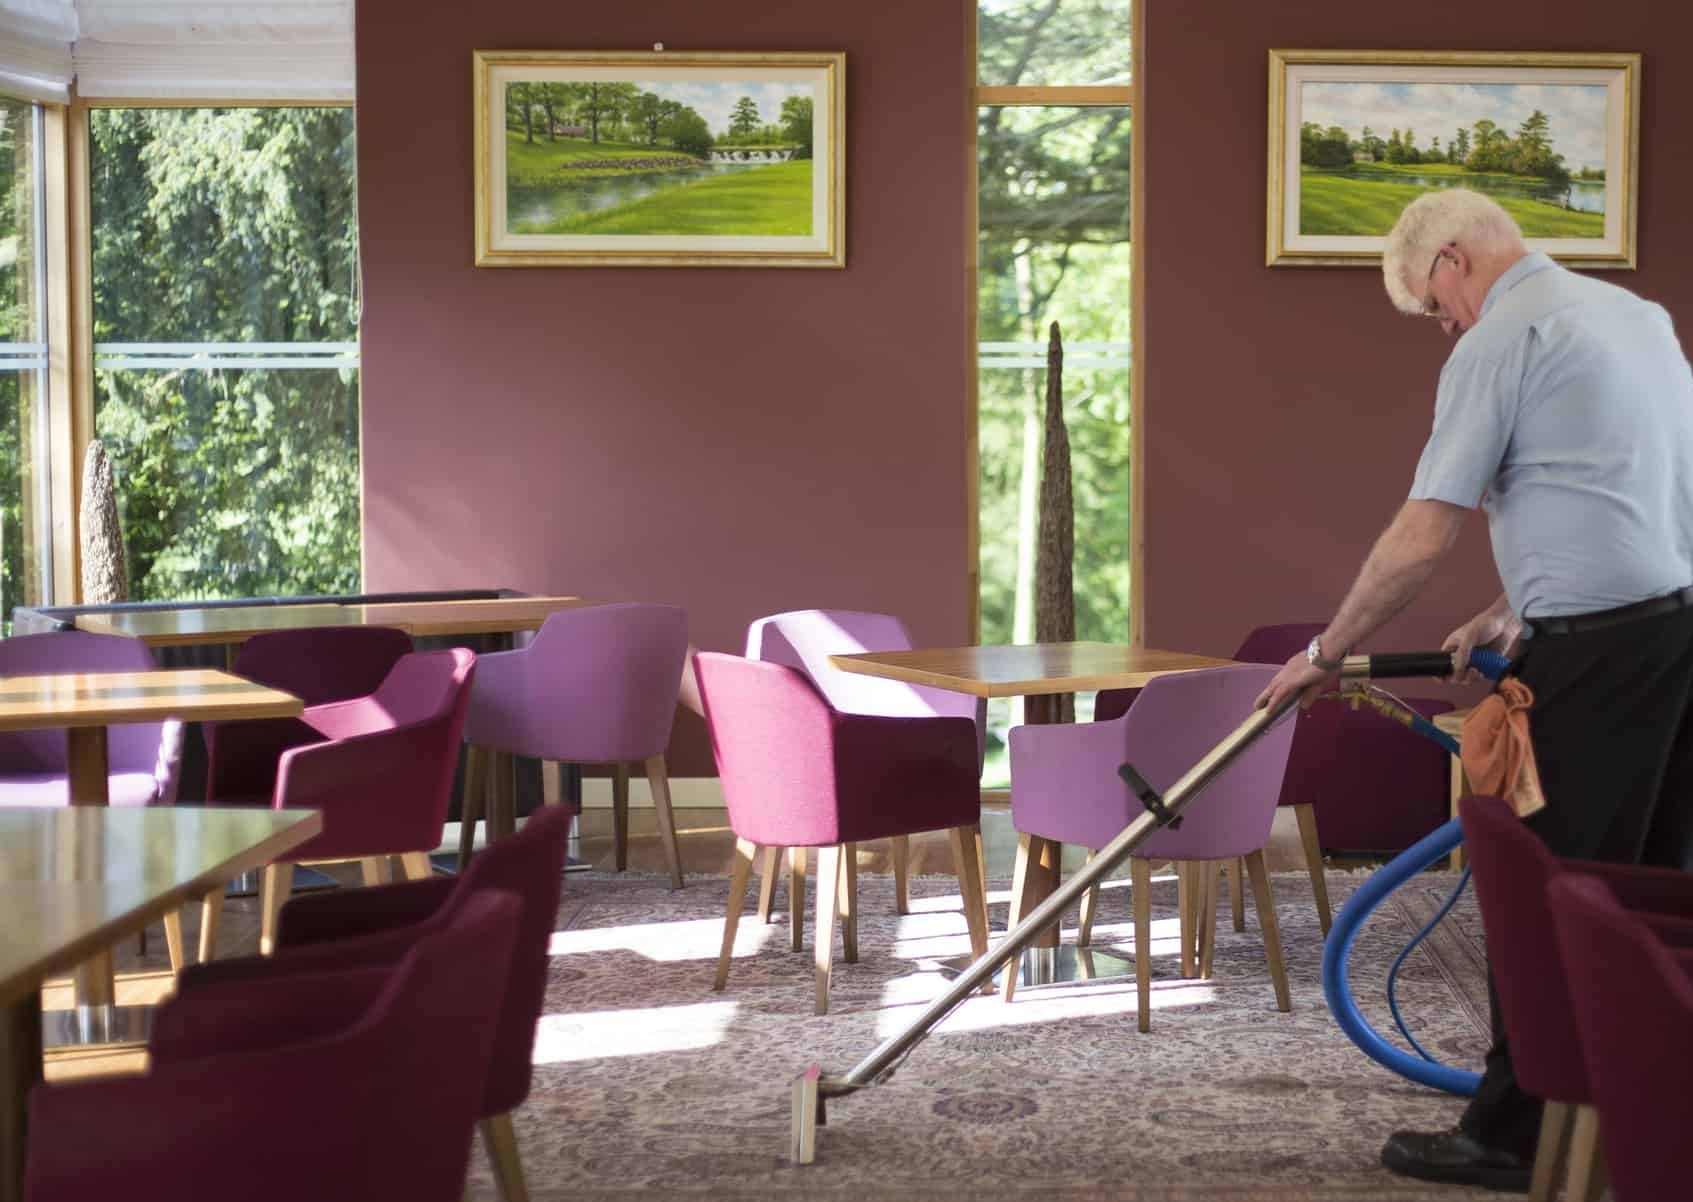 Restaurant Room of Hotel Carpet Deep Cleaning and Disinfecting